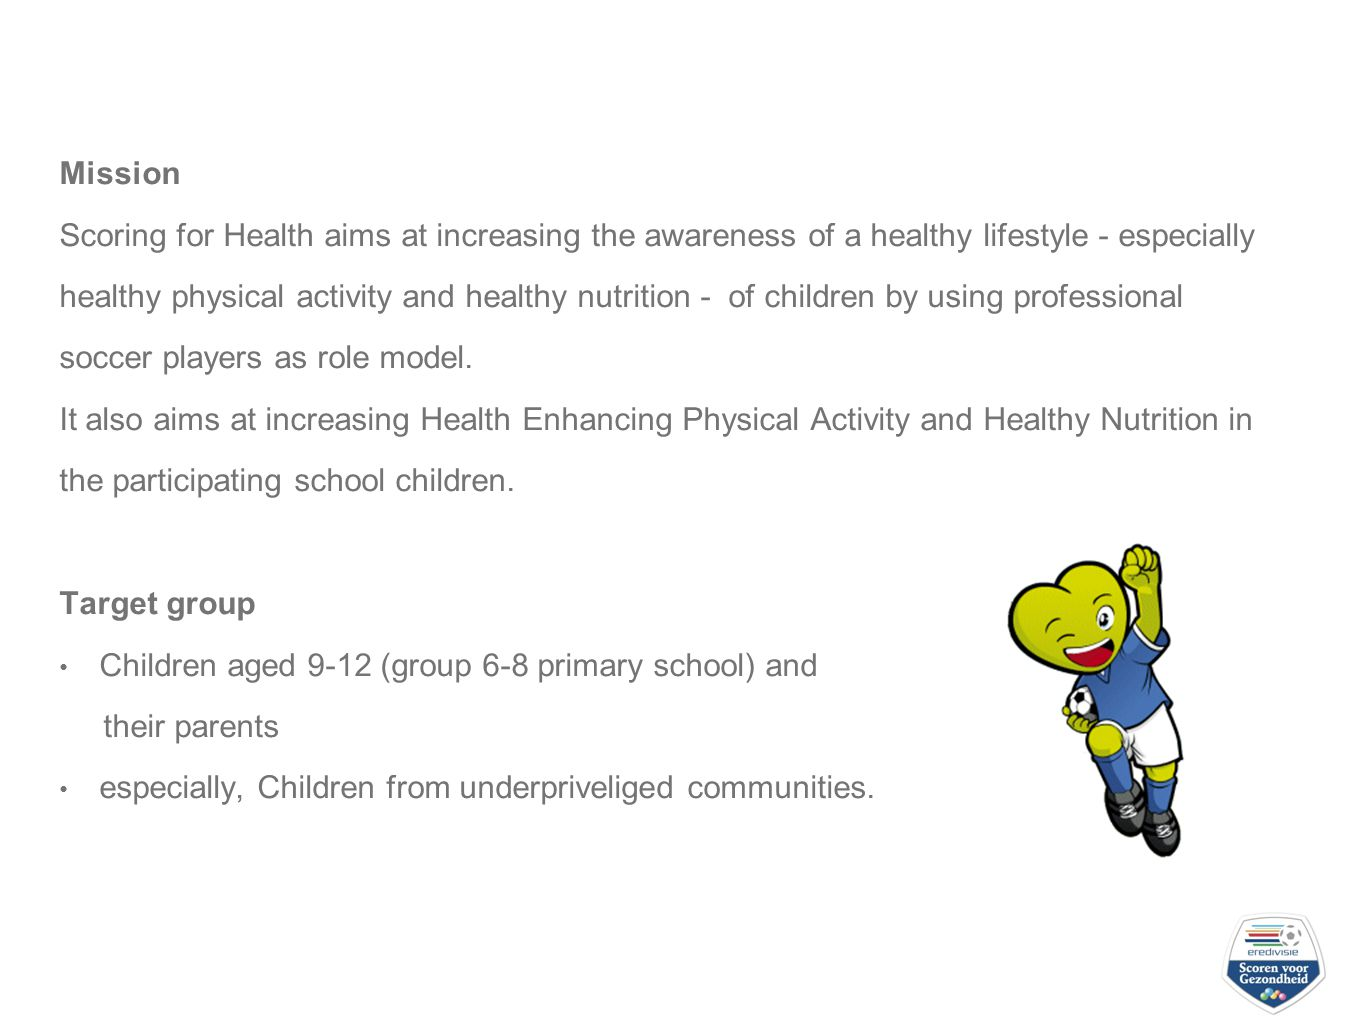 Mission Scoring for Health aims at increasing the awareness of a healthy lifestyle - especially healthy physical activity and healthy nutrition - of children by using professional soccer players as role model.